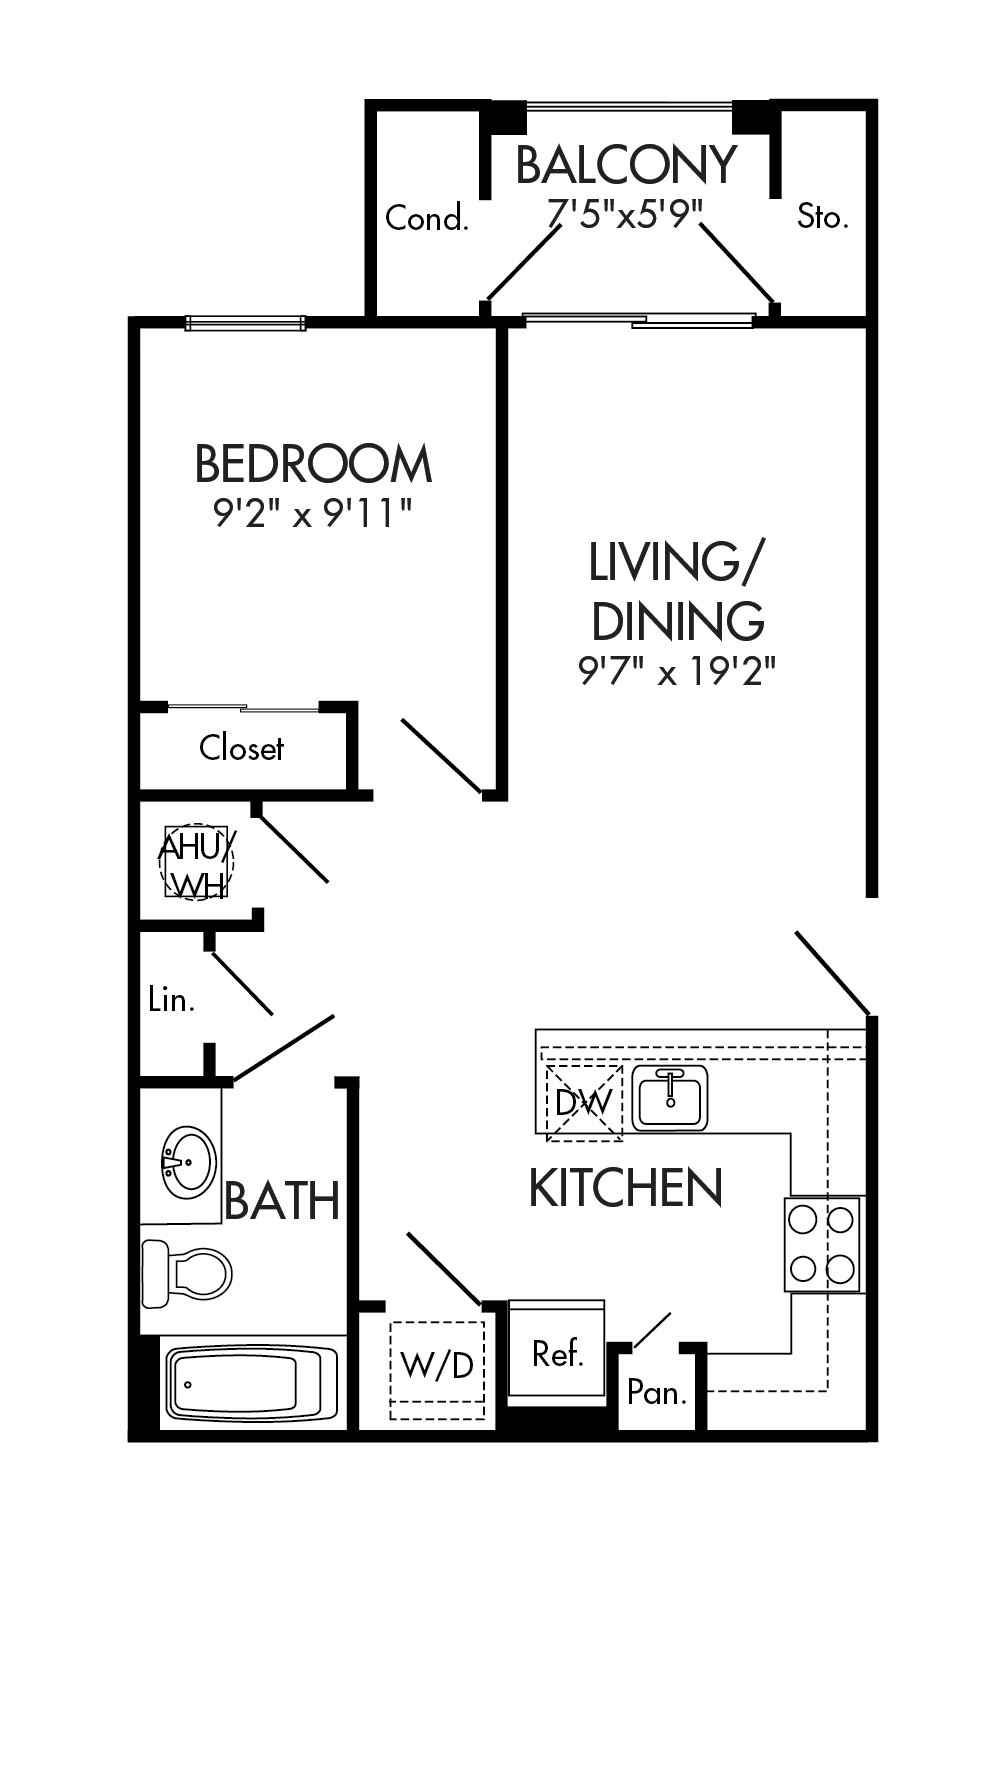 floor plan for 1711 Wisteria Pond Way, #413